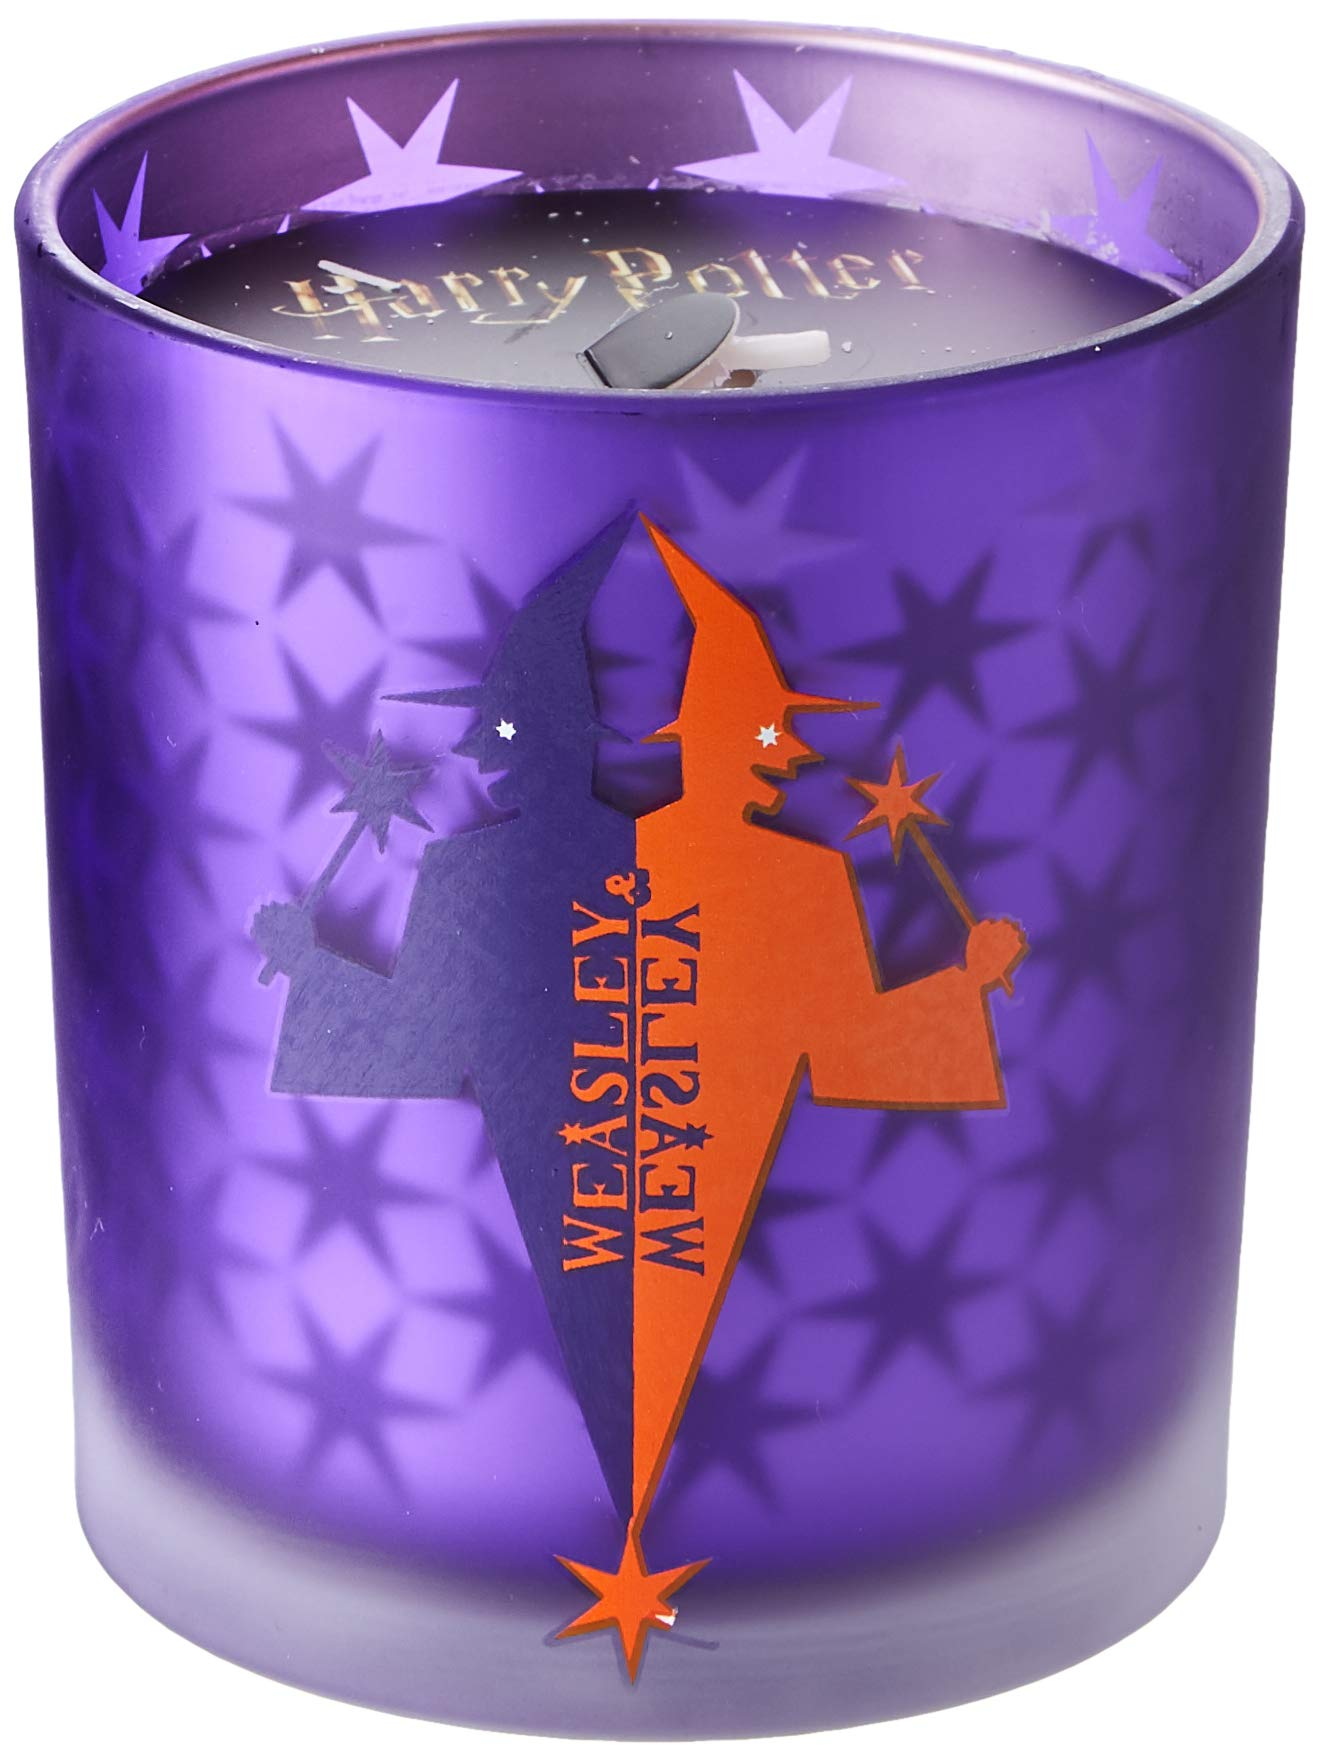 Harry Potter: Weasleys Wizard Wheezes Glass Candle ...